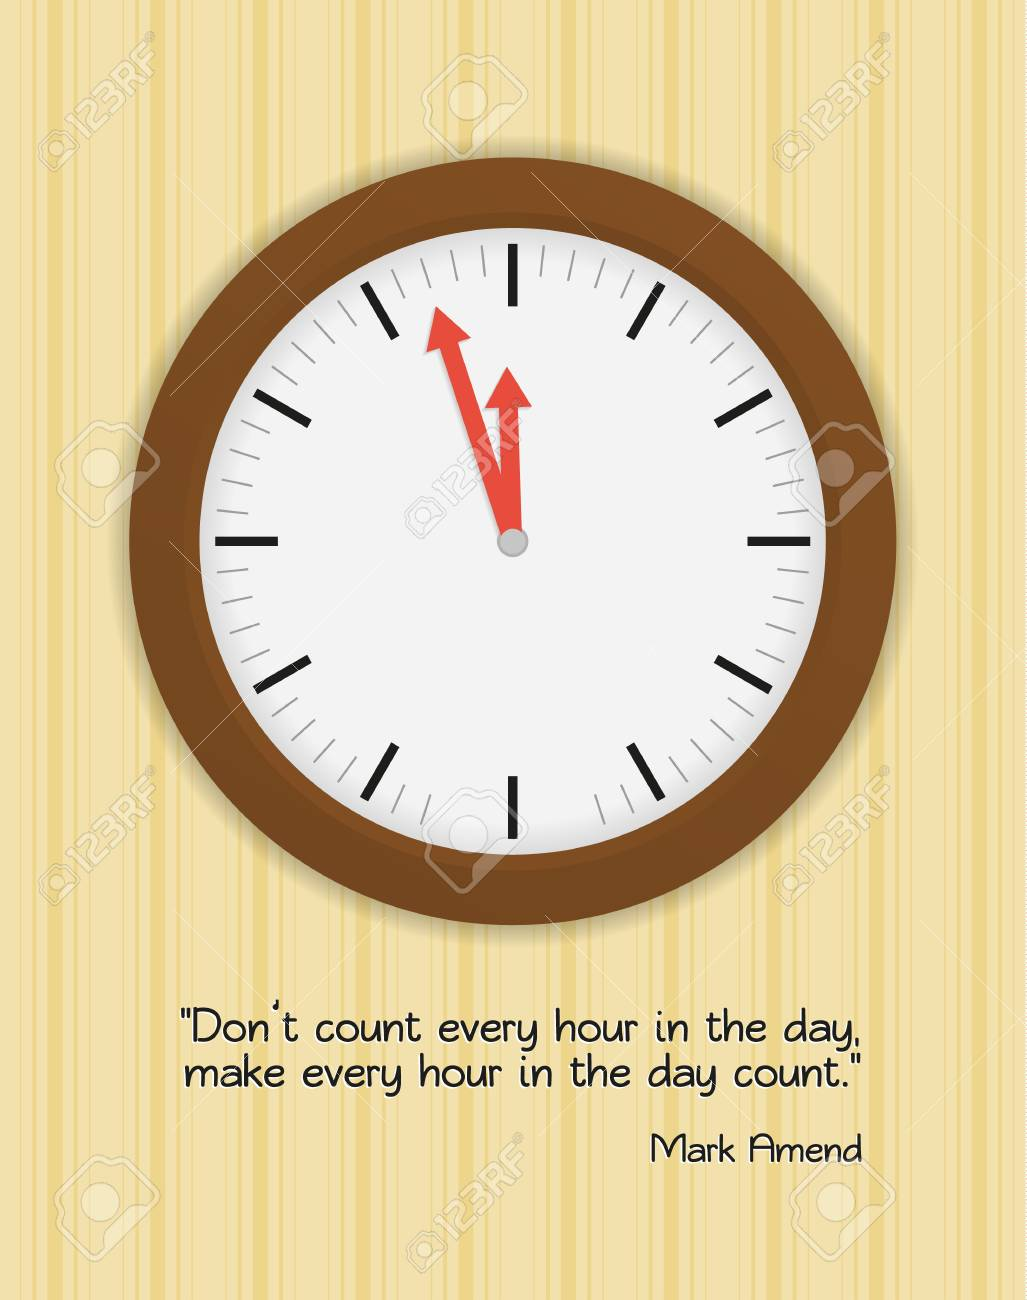 Wood Clock On Wall With Wallpaper And Quote About Time And Its